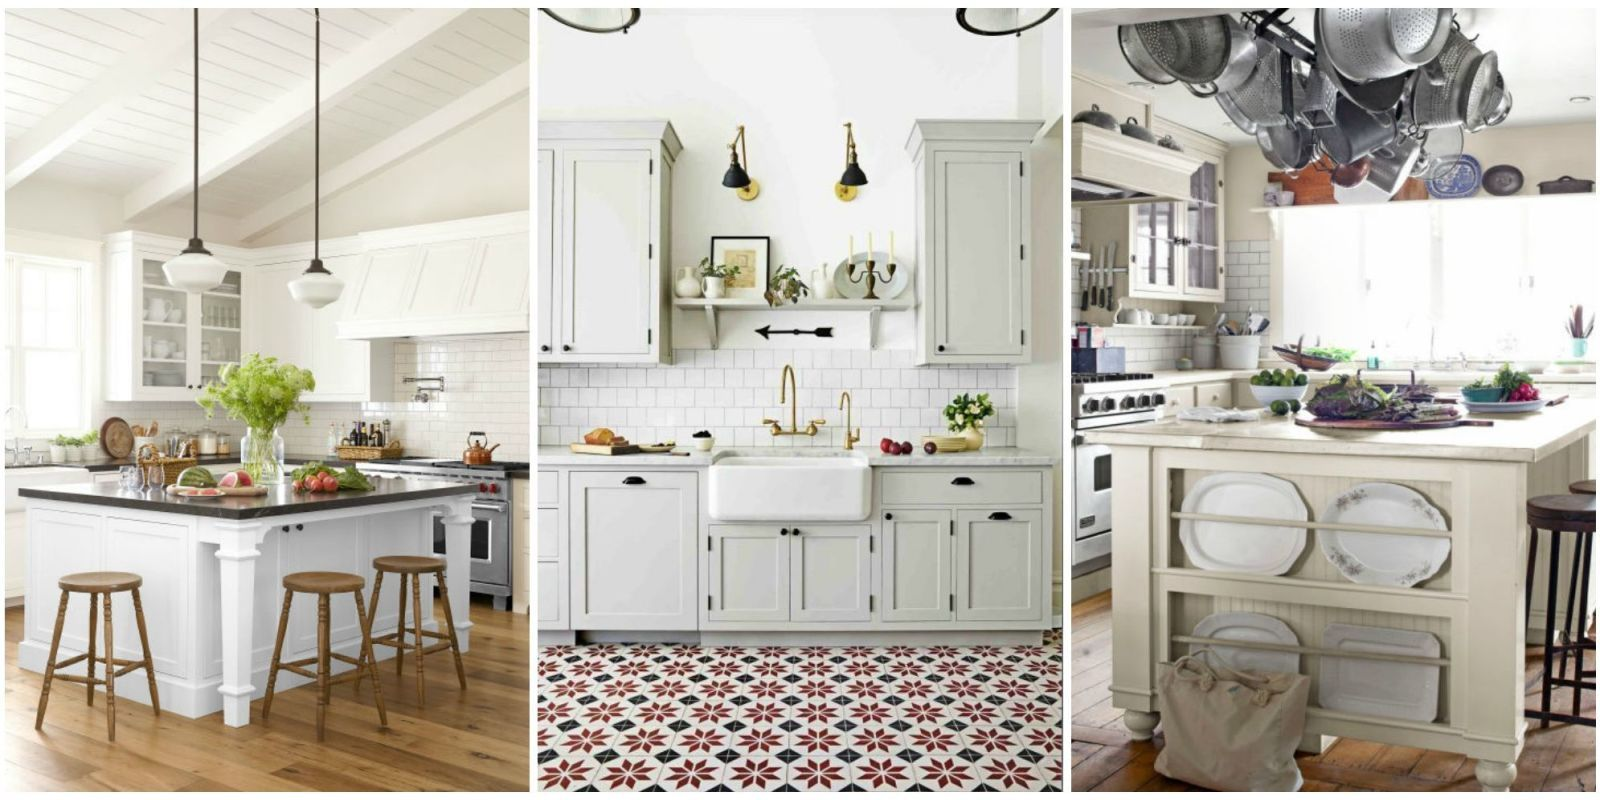 10 best white kitchen cabinet paint colors ideas for kitchen with rh countryliving com Kitchen Colors with White Cabinets Kitchen Colors with White Cabinets